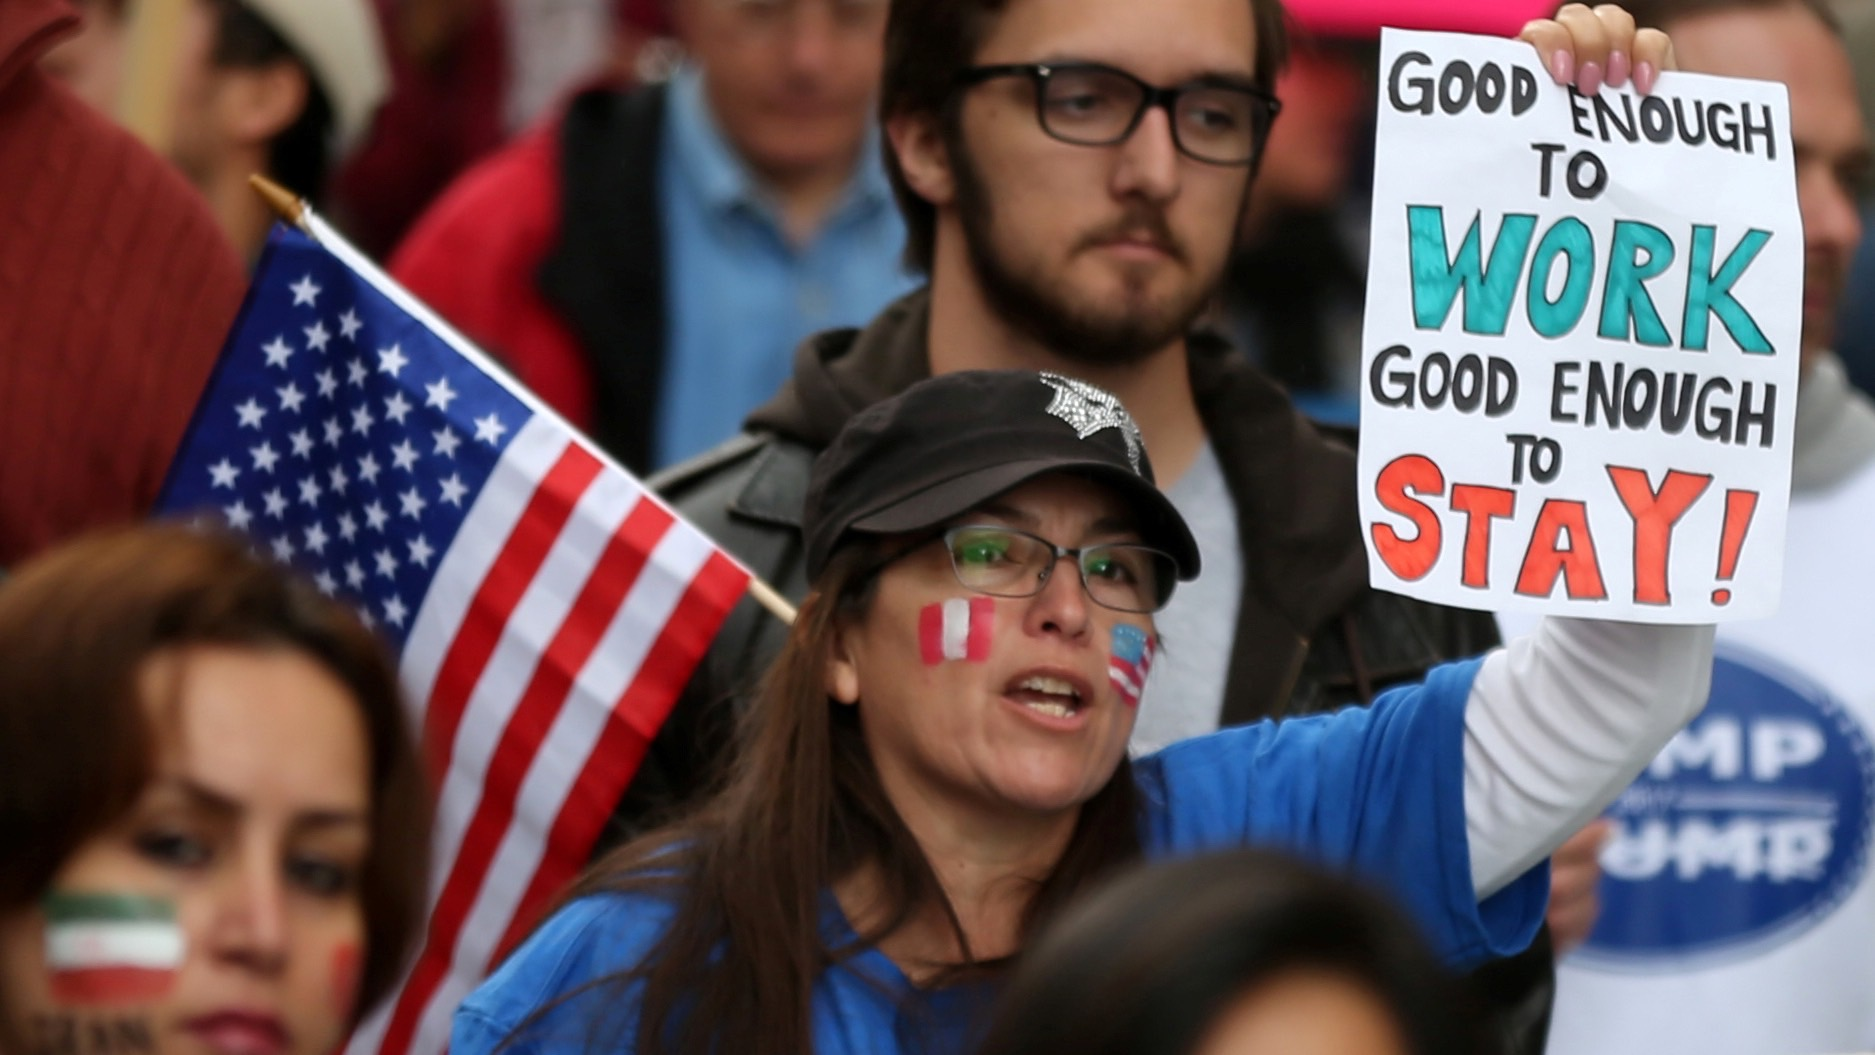 People participate in a protest march calling for human rights and dignity for immigrants, in Los Angeles, February 18, 2017. REUTERS/Lucy Nicholson - RTSZBEN